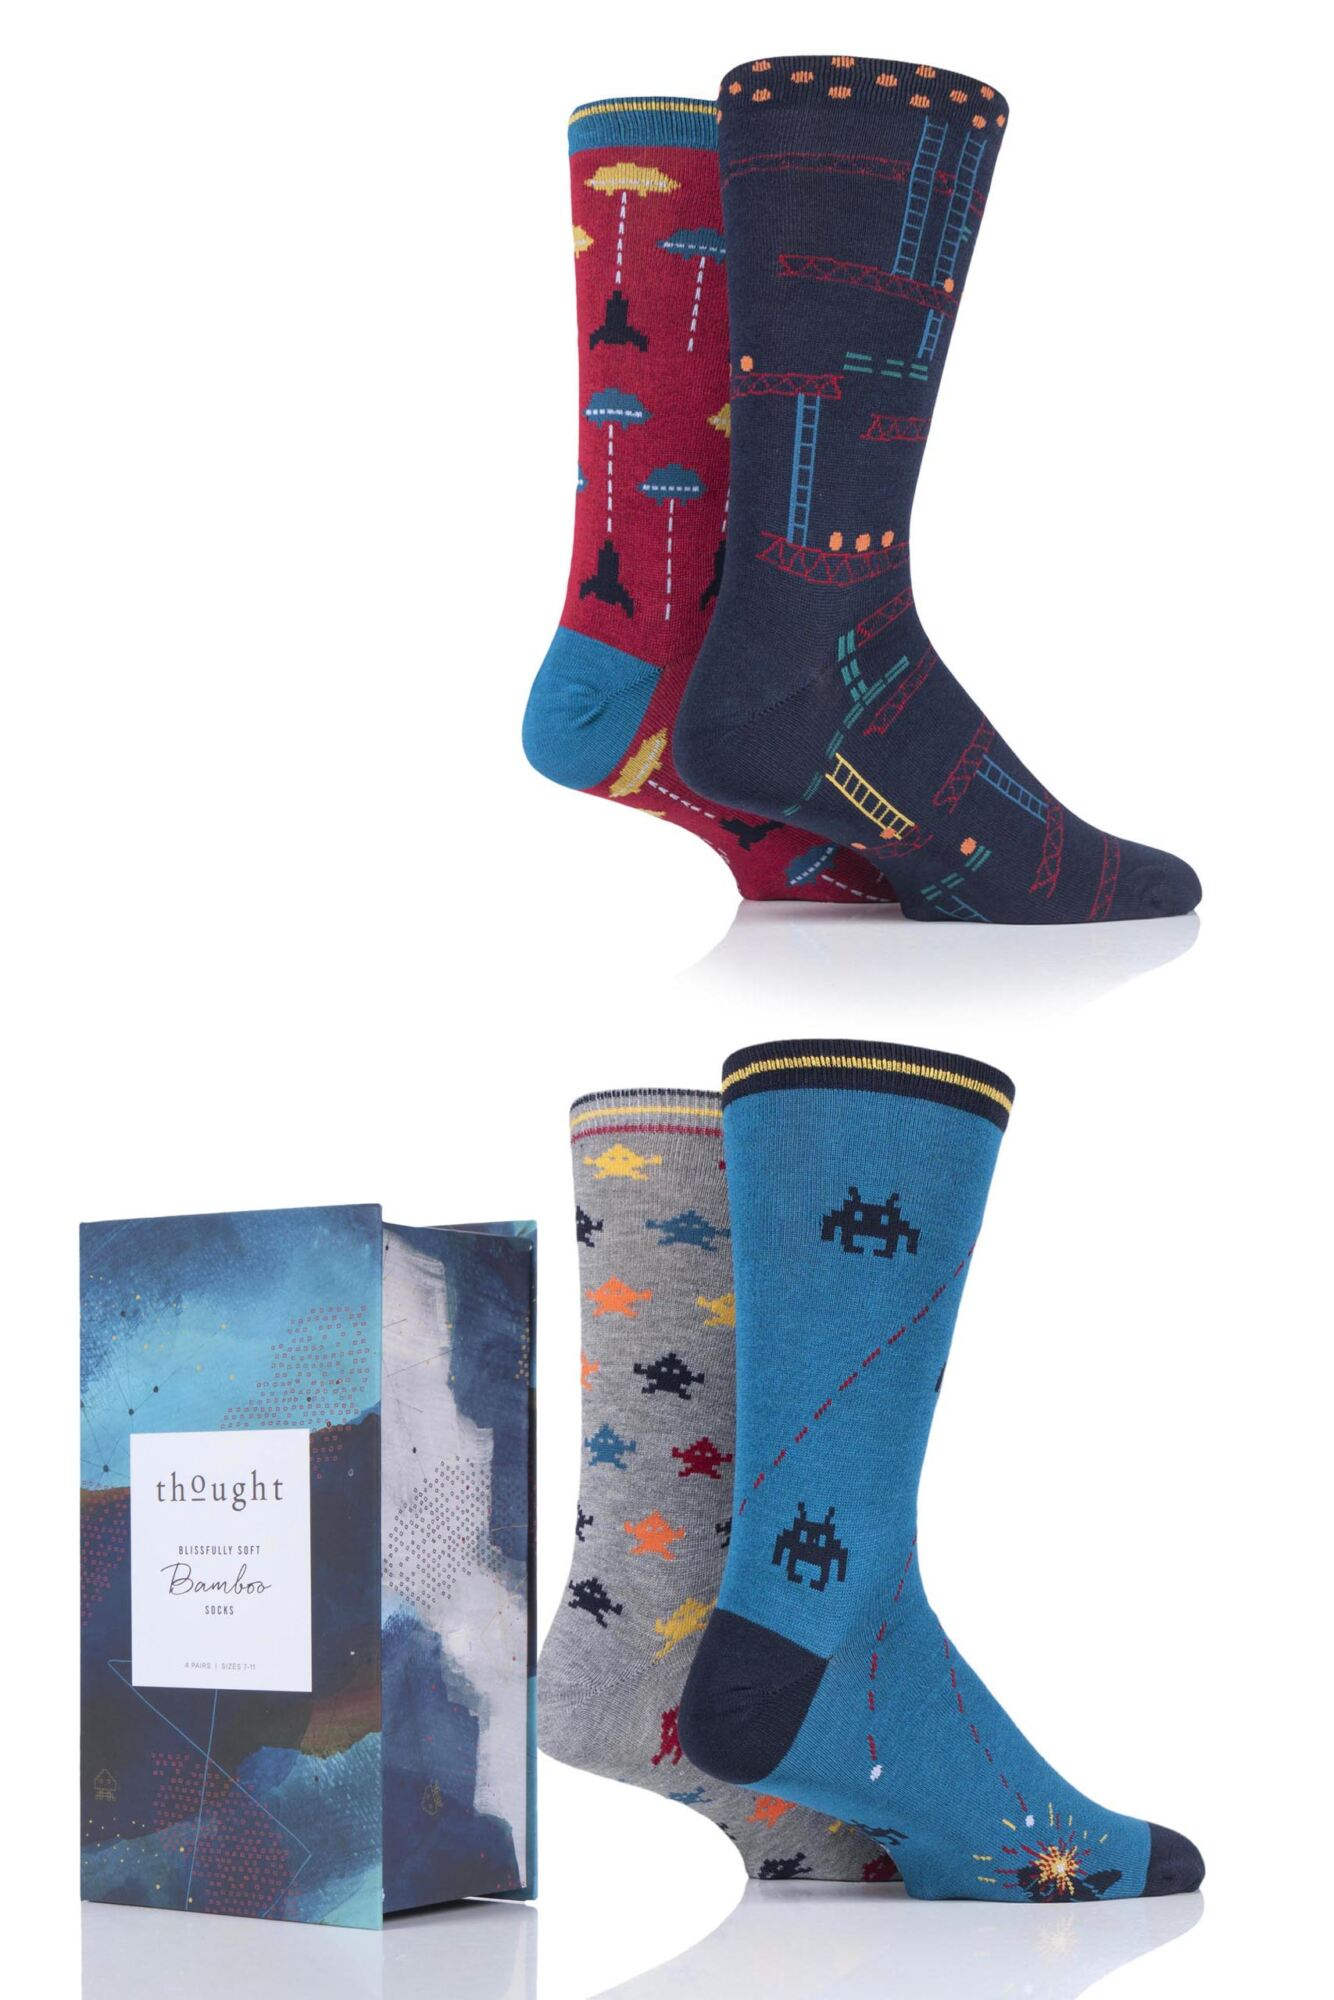 4 Pair Arcade Games Bamboo and Organic Cotton Gift Boxed Socks Men's - Thought